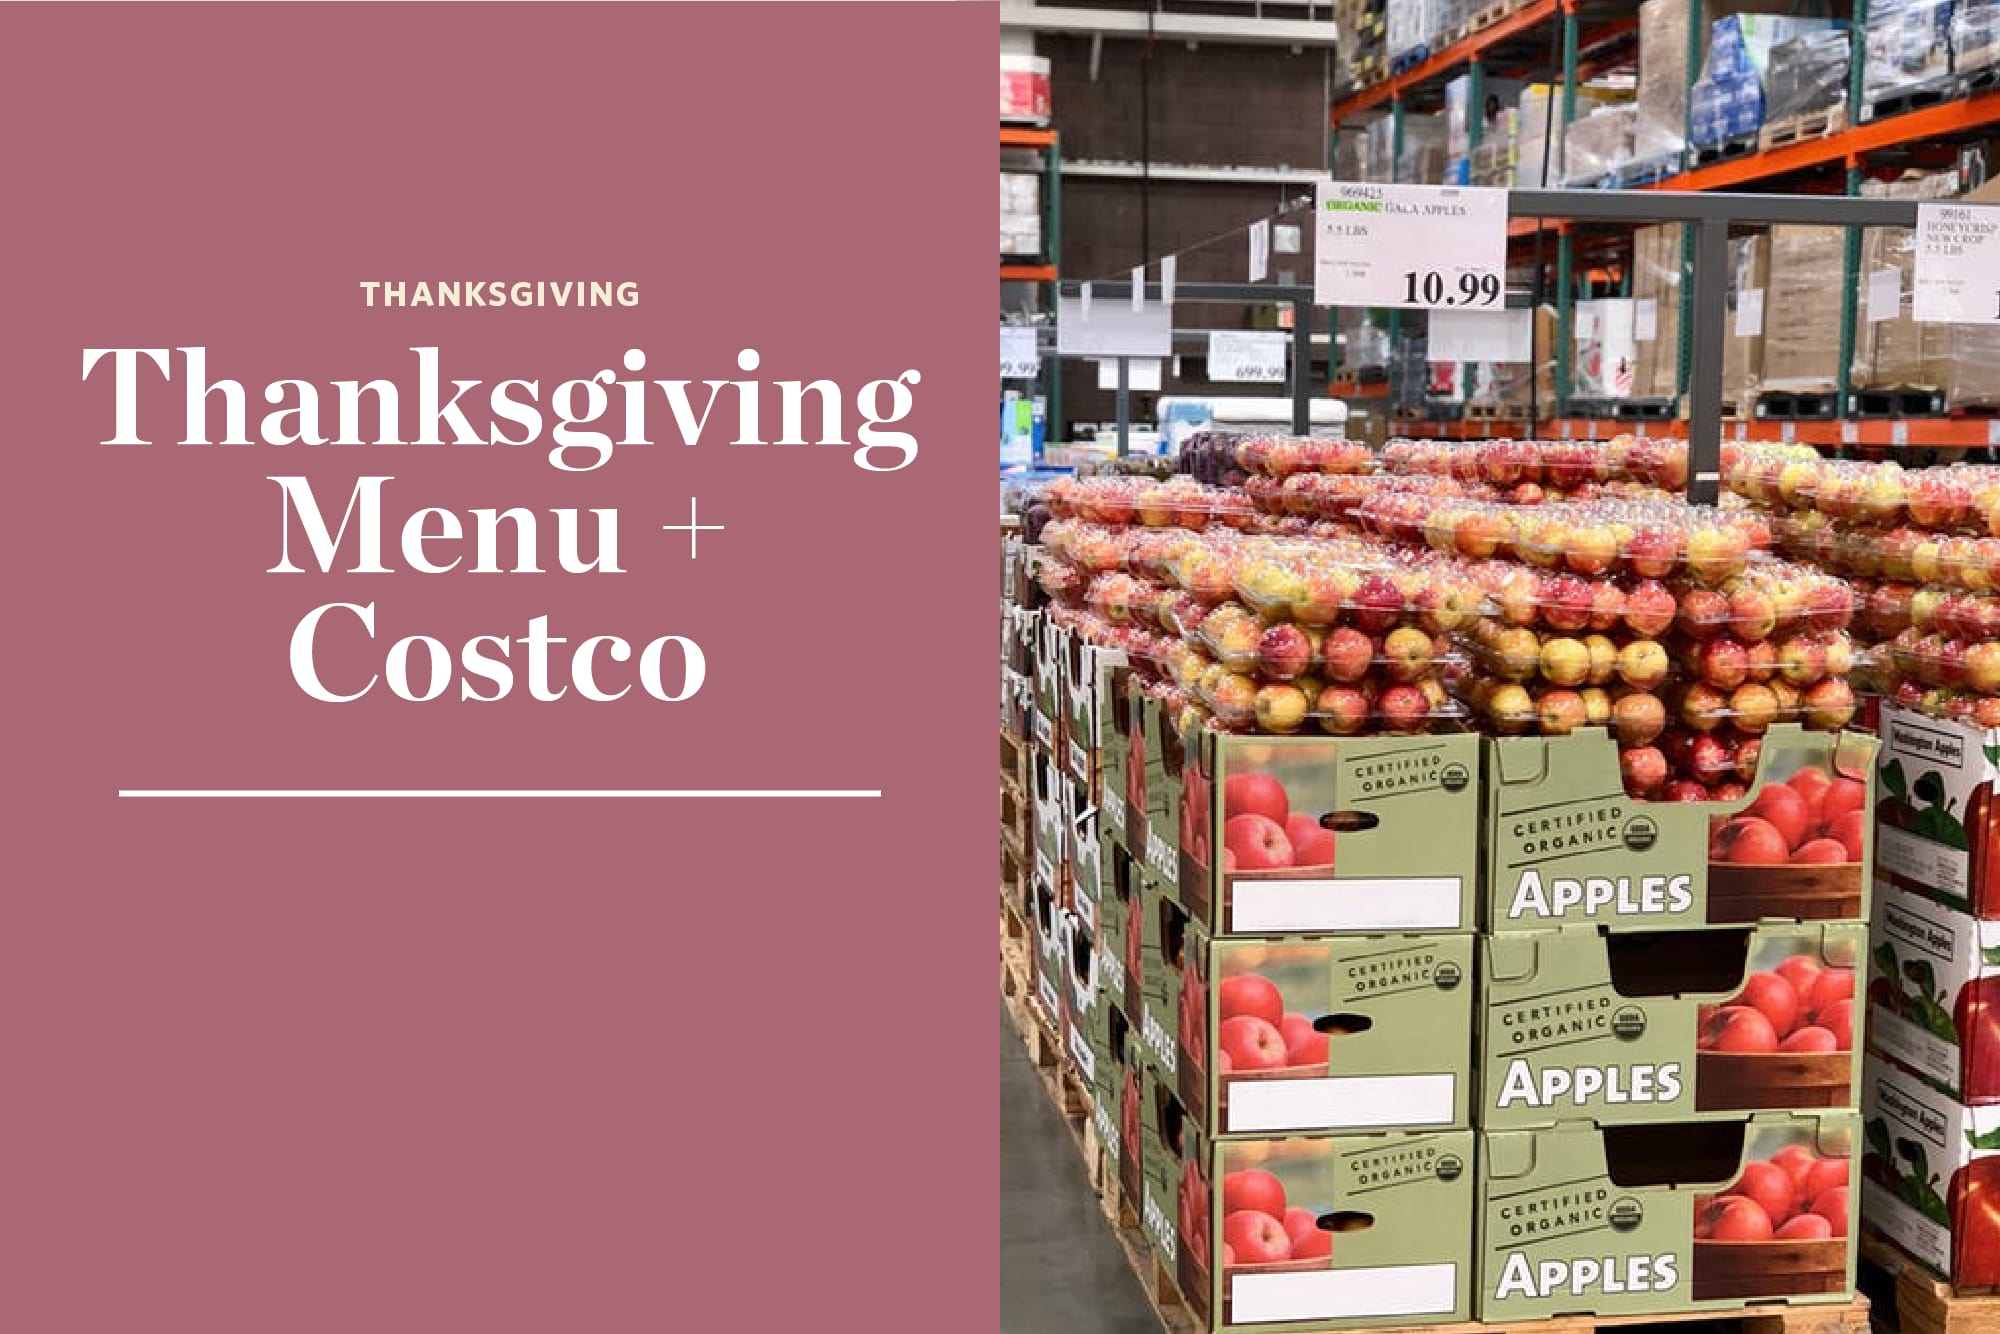 I Went Shopping for Thanksgiving at Costco & This Is How Much It Cost